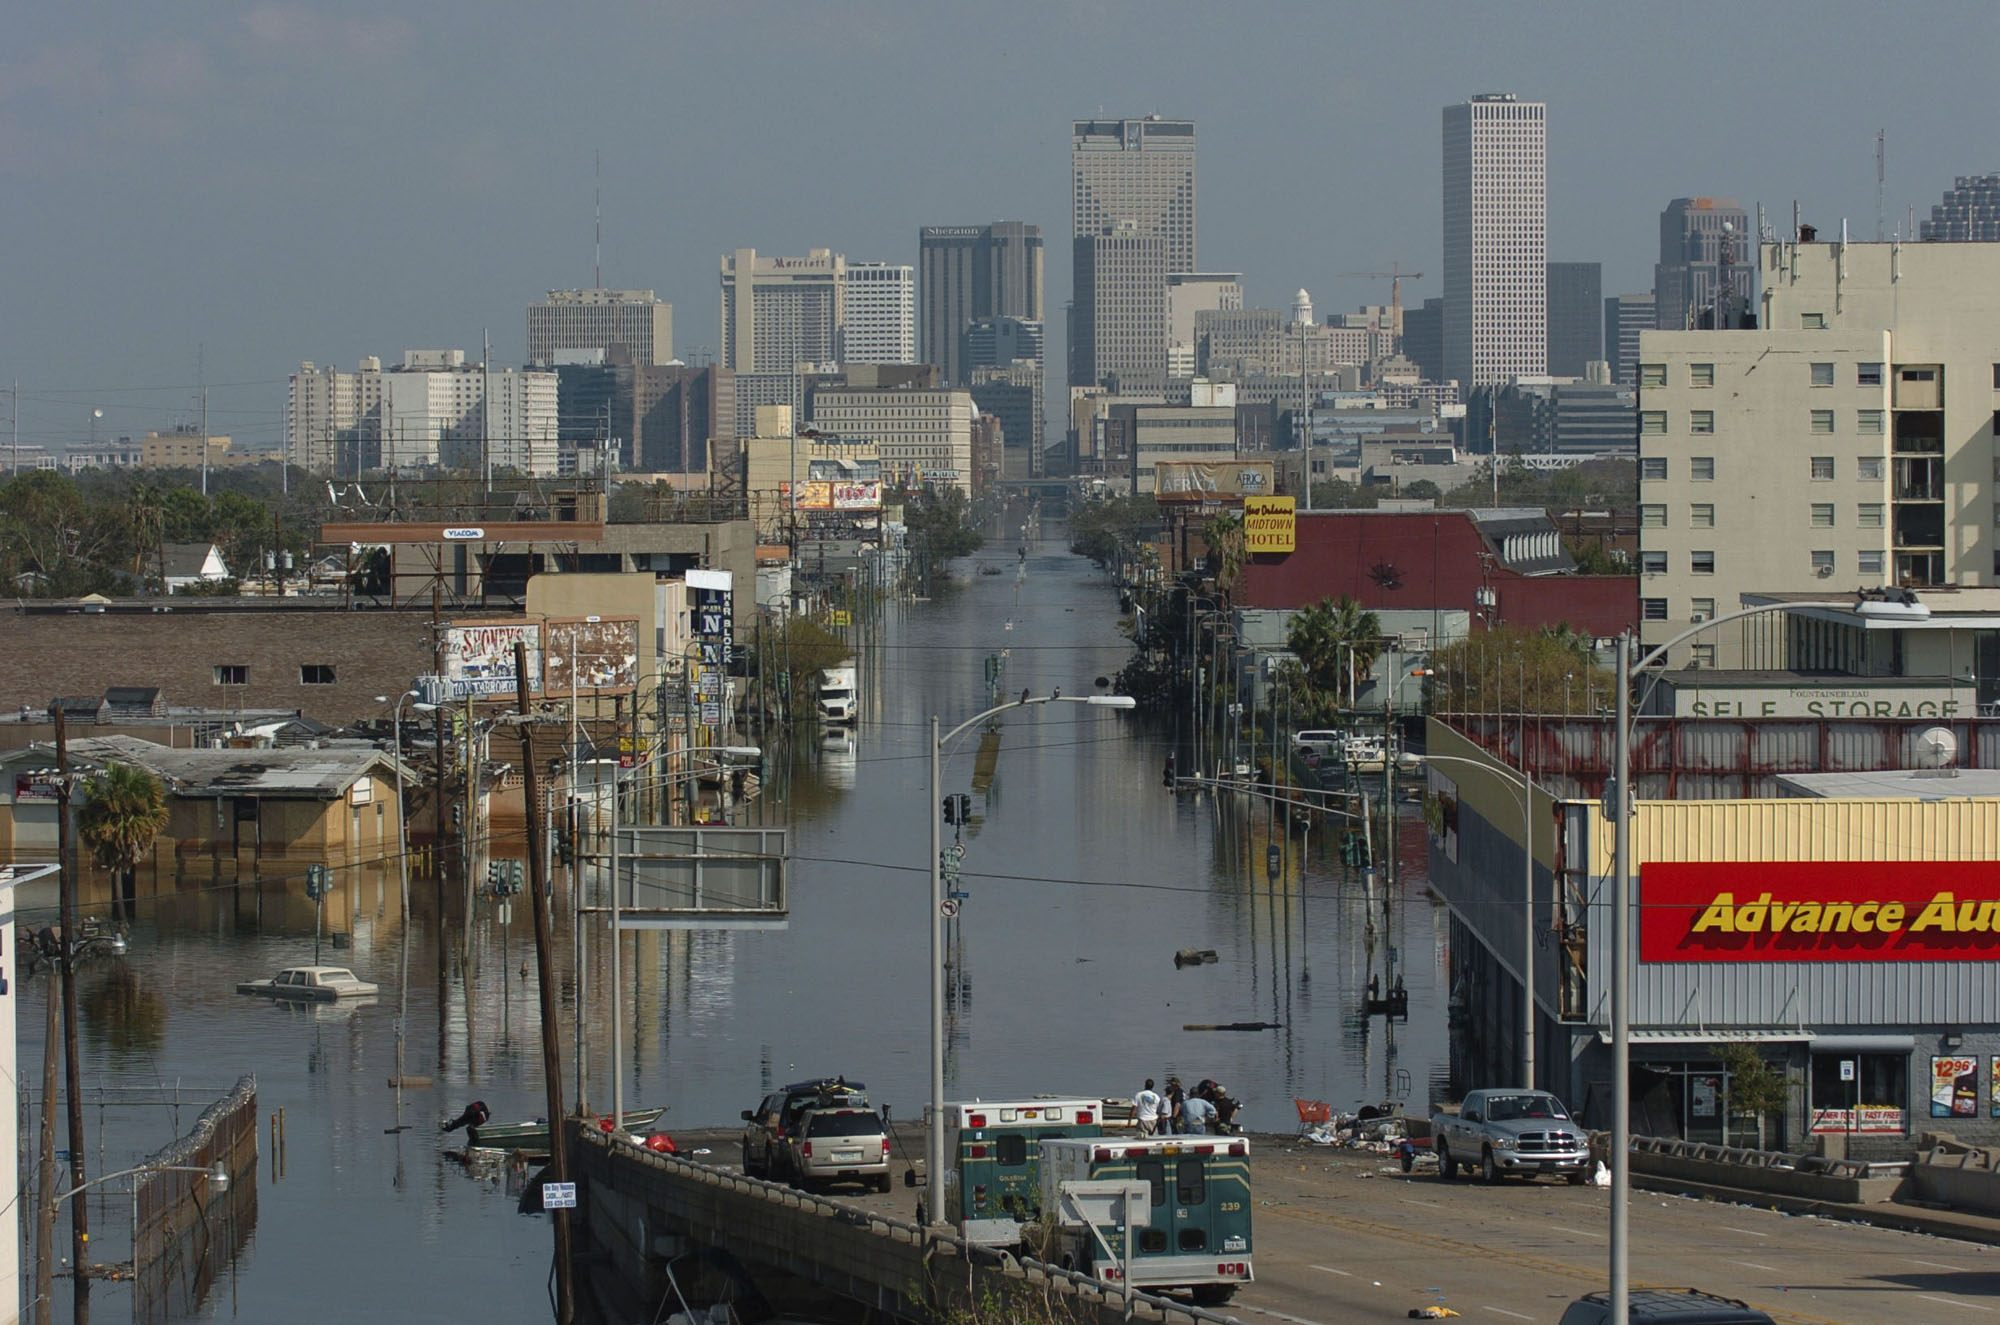 Downtown New Orleans skyline and the flooded Tulane Ave. offramp from I-10